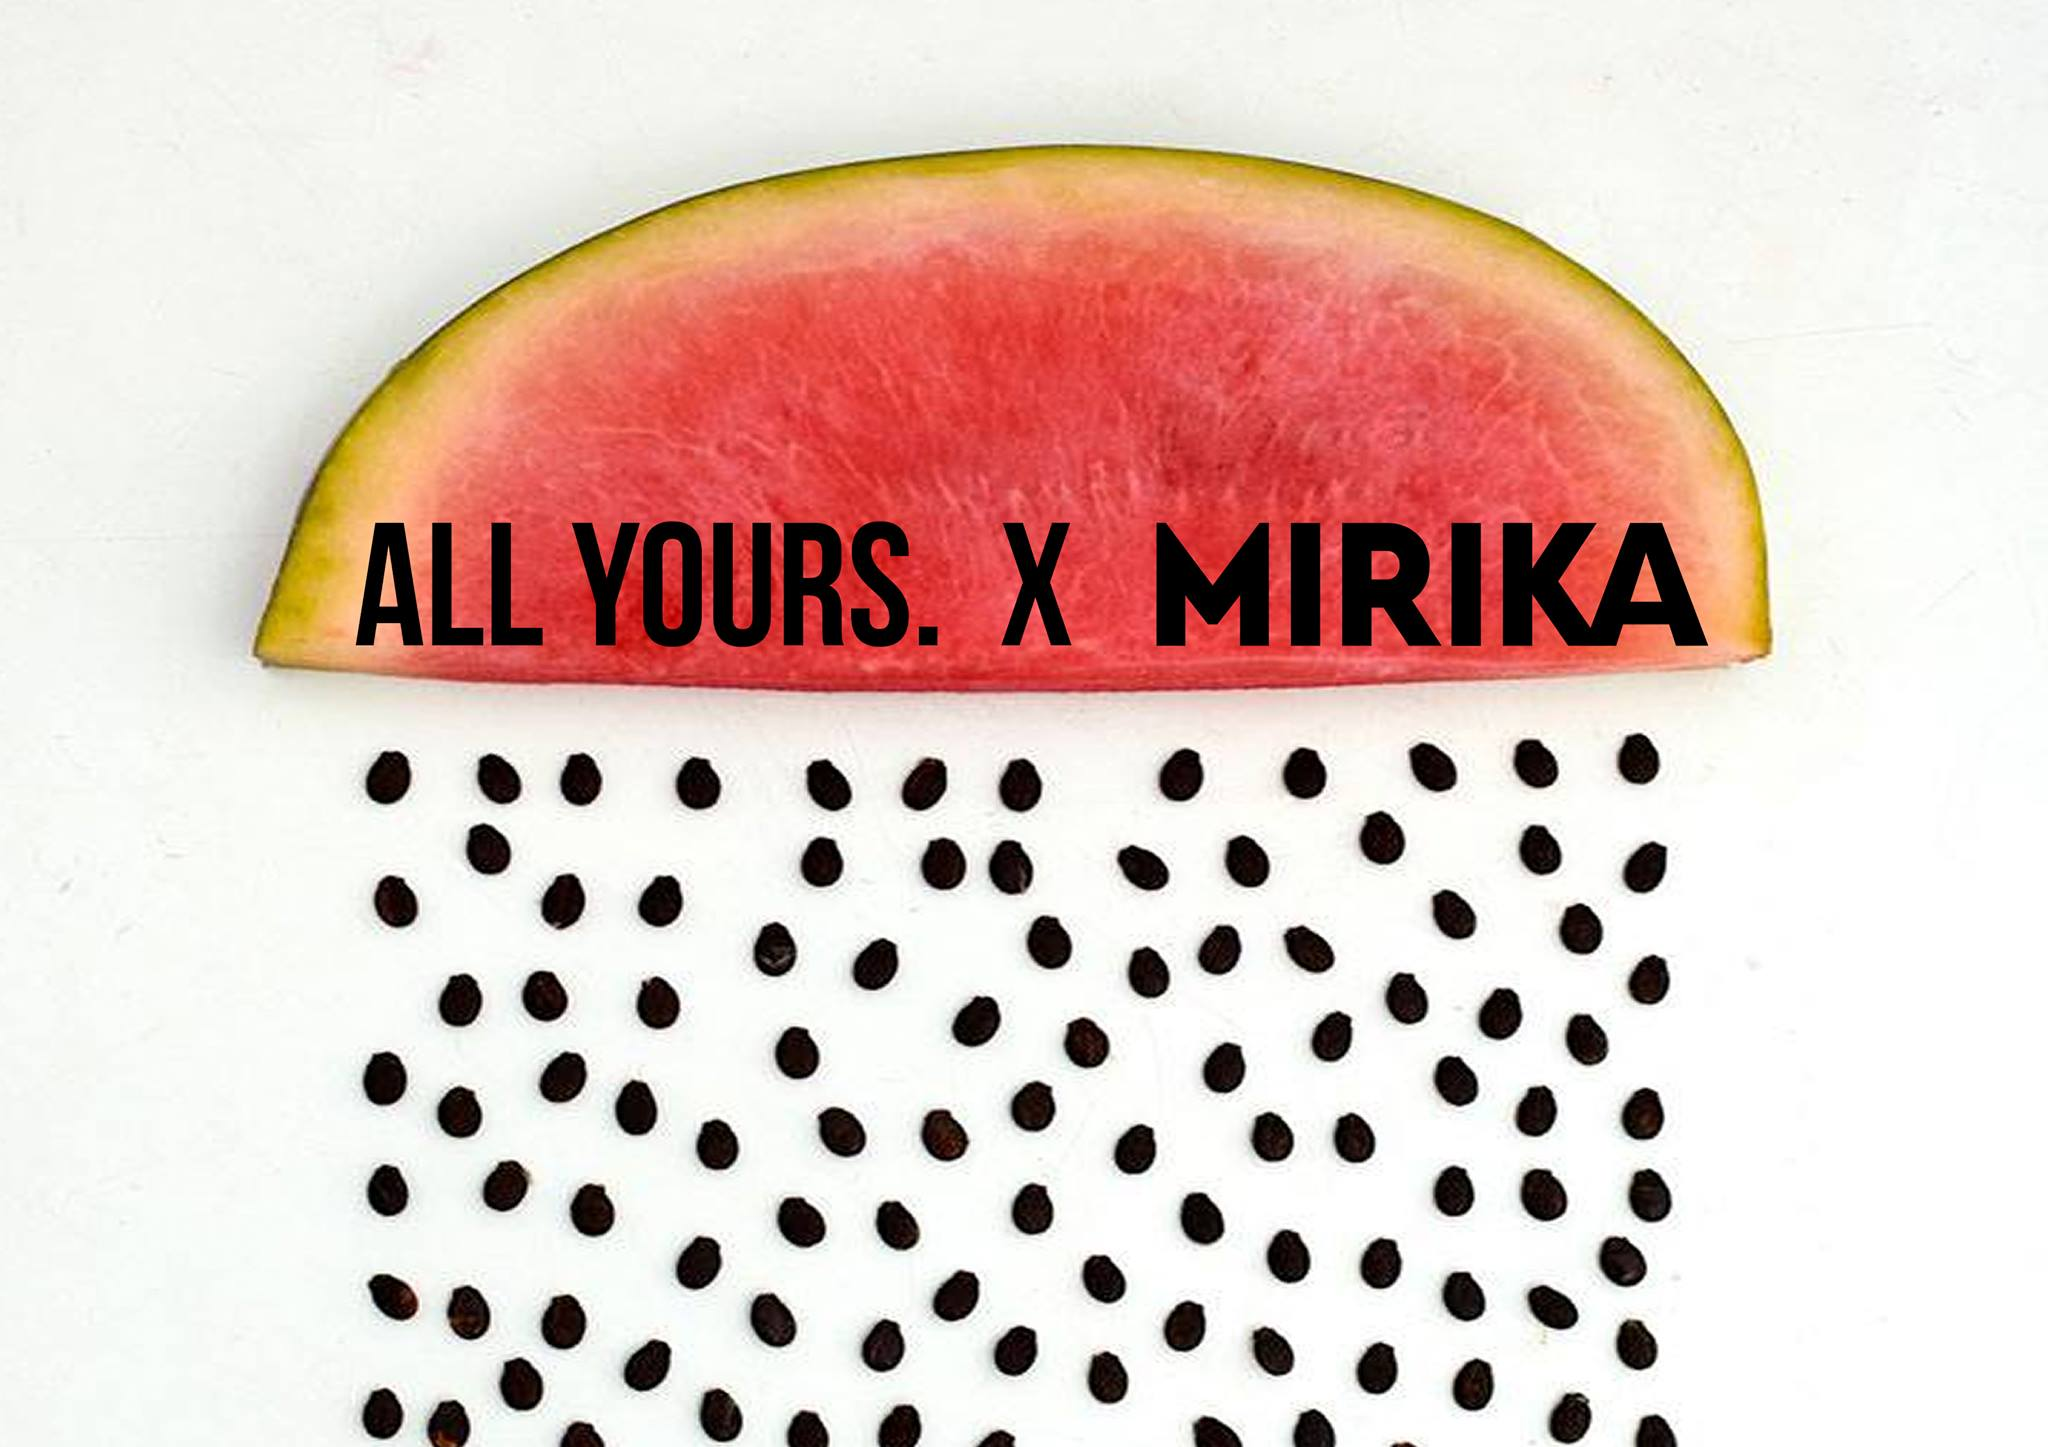 ALL YOURS X MIRIKA